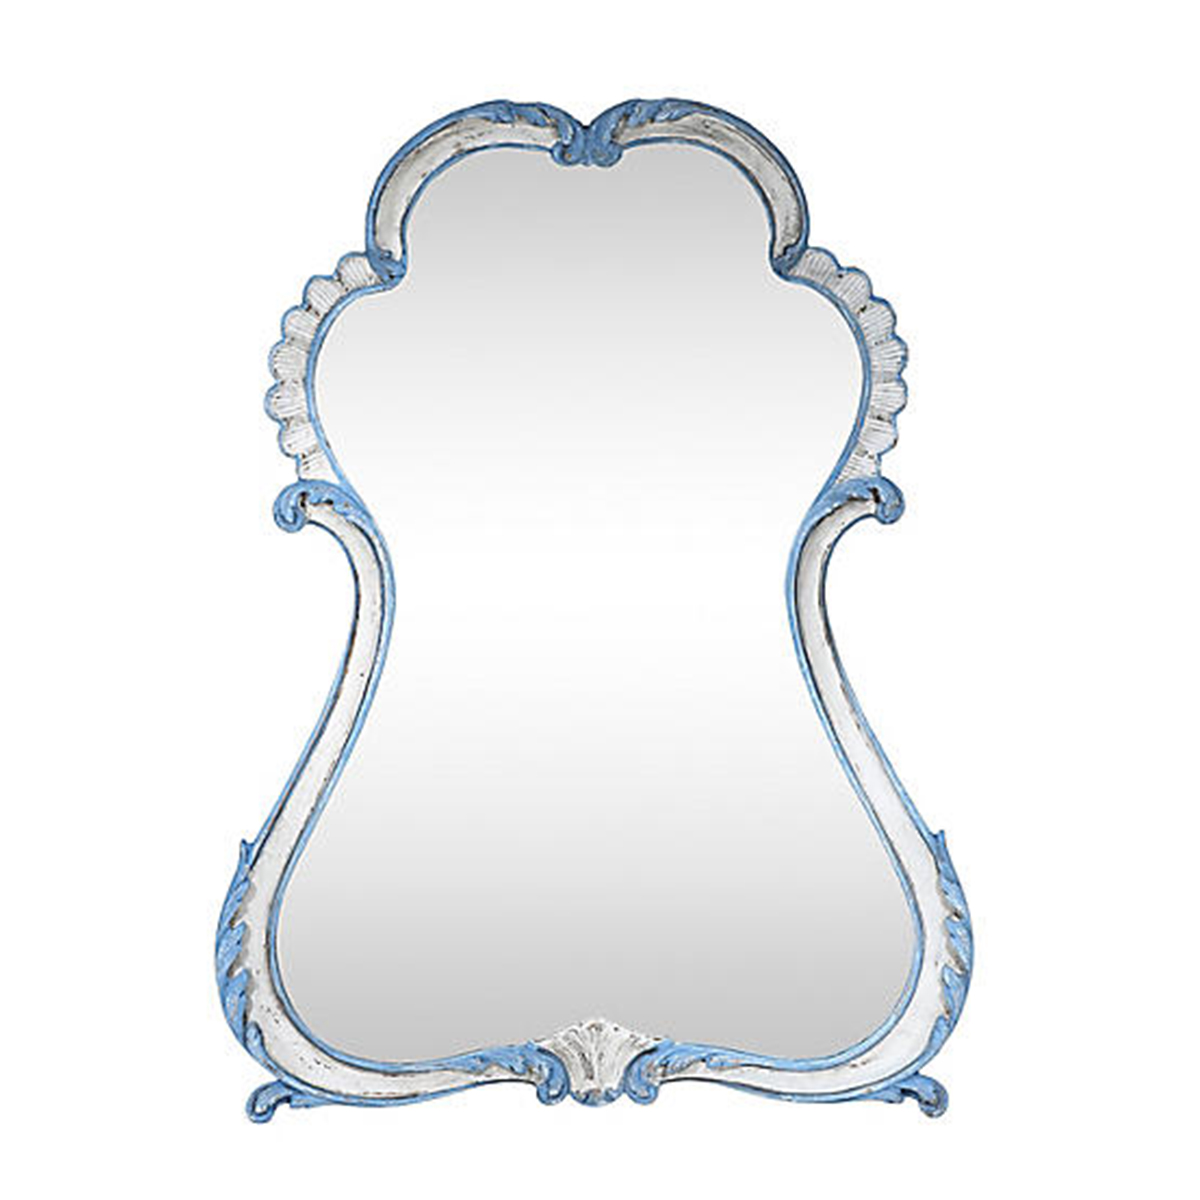 labarge french blue and white mirror.jpg